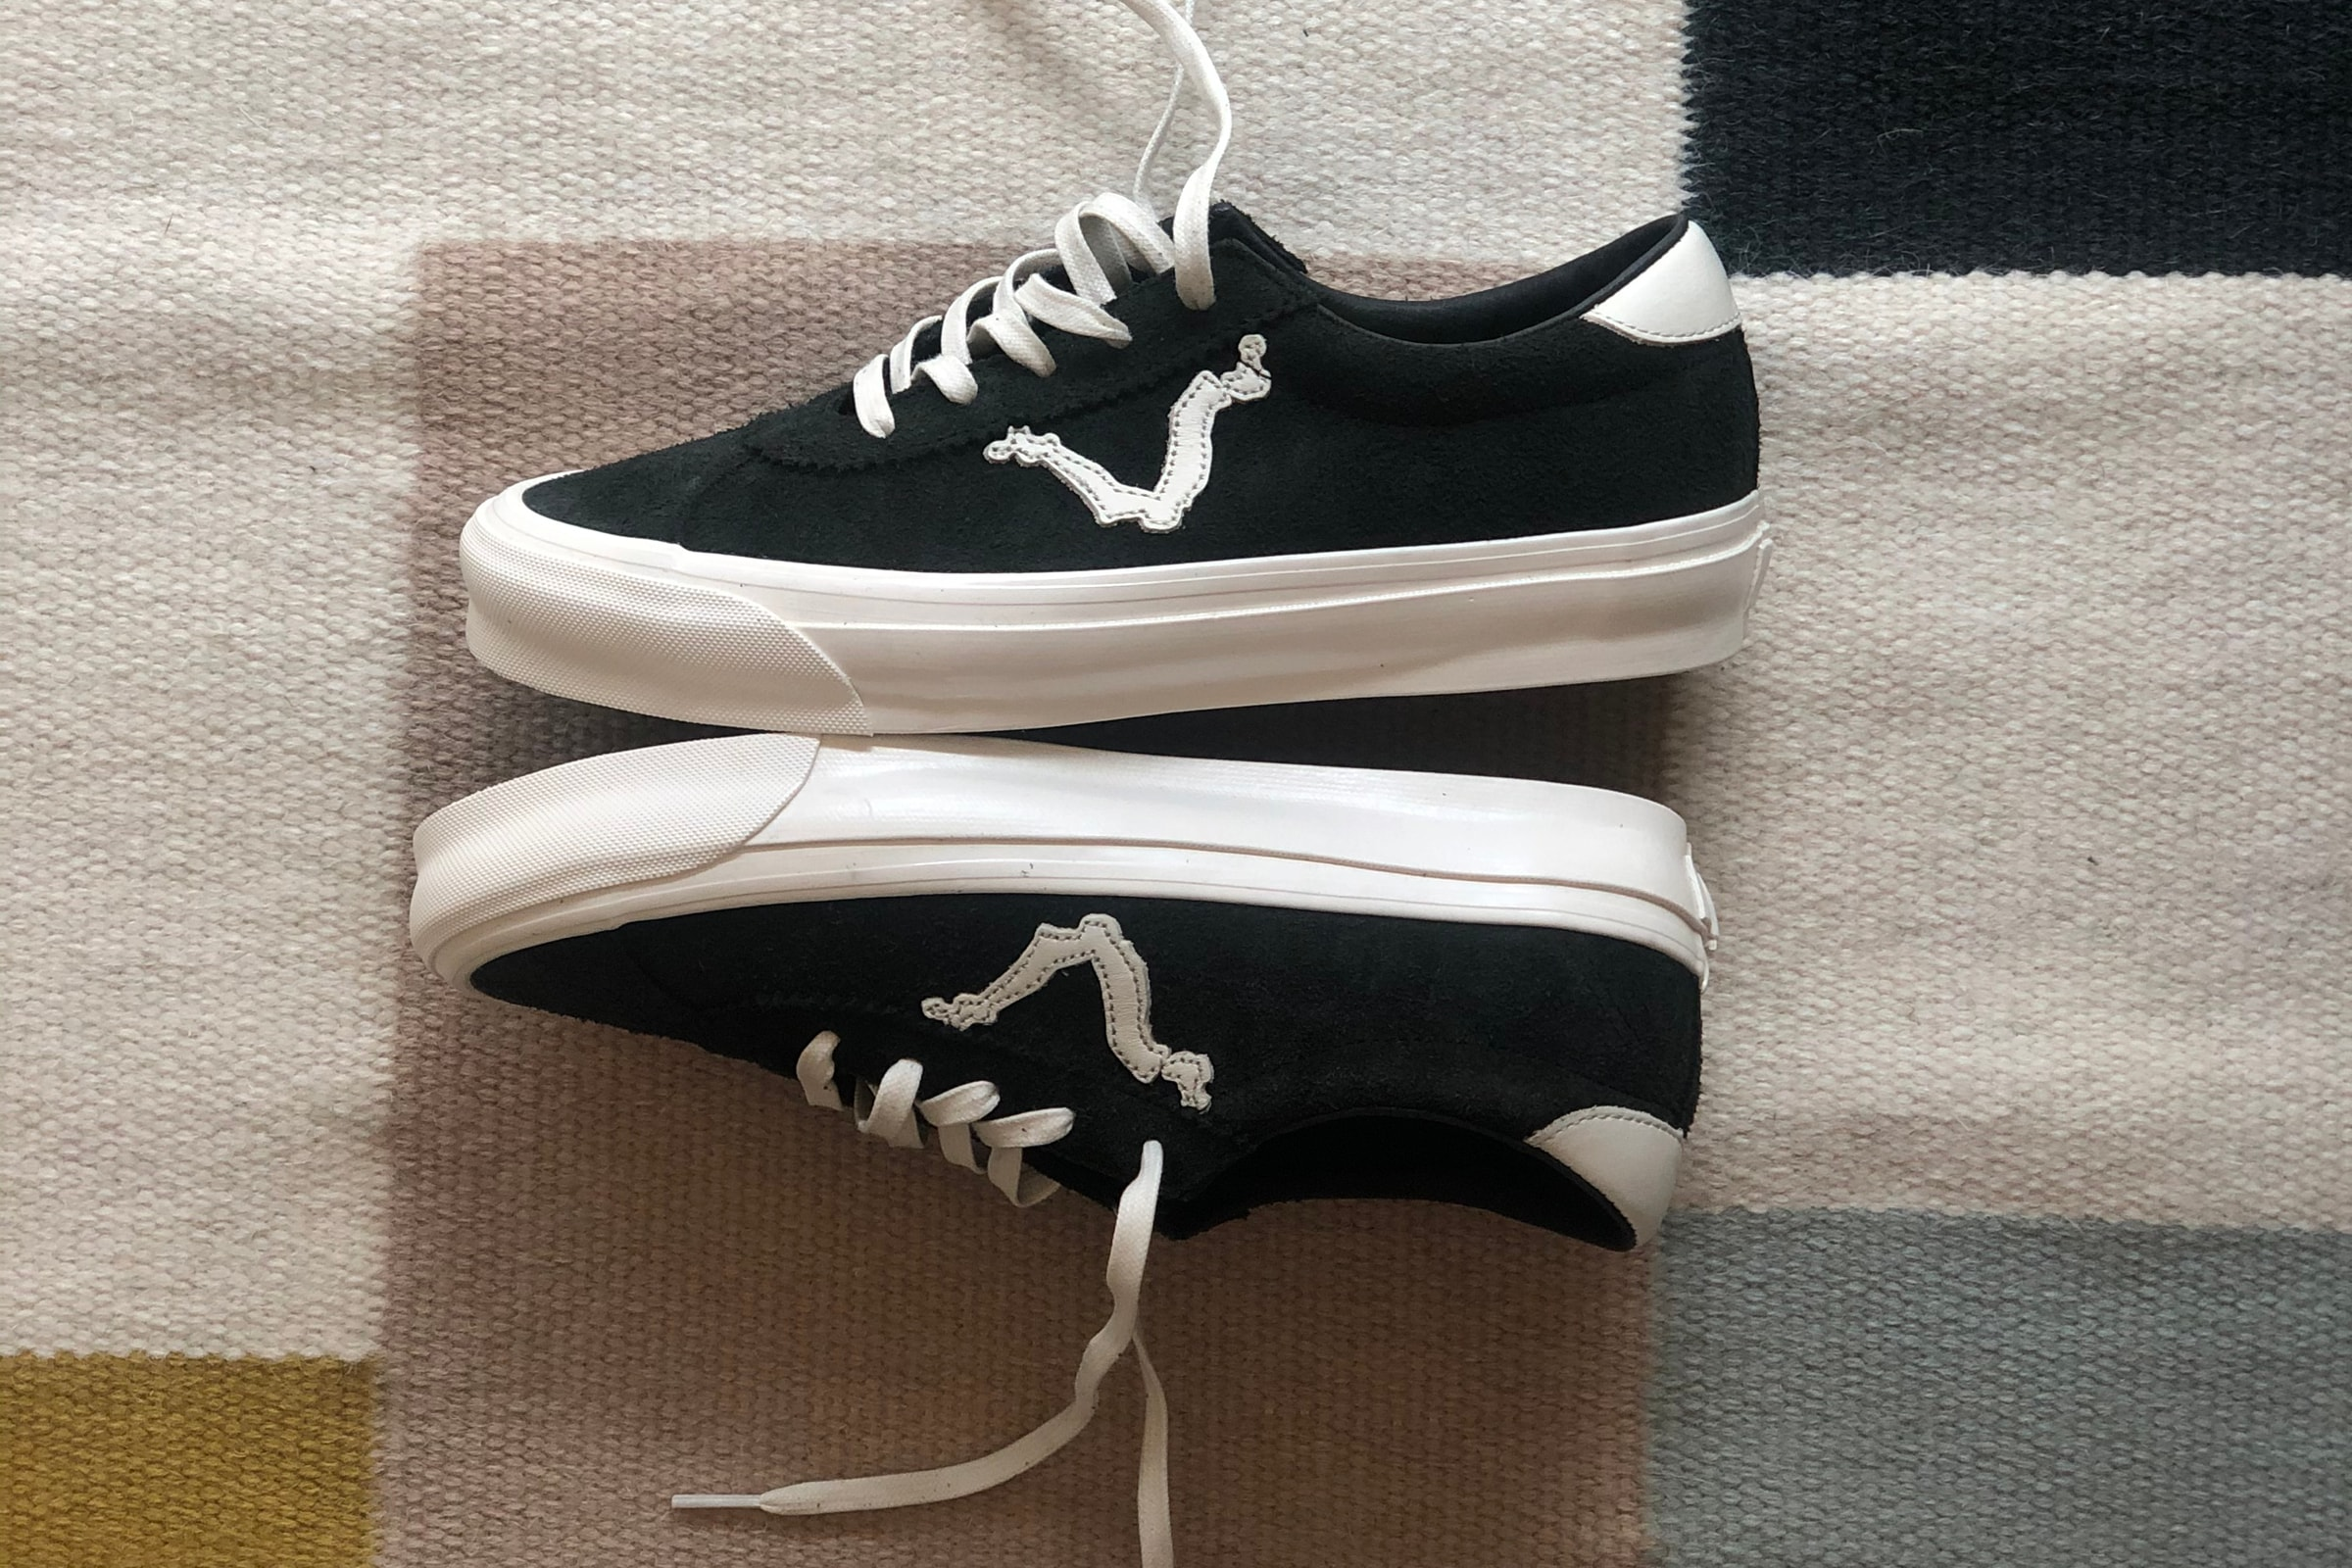 Blends x Vans OG Epoch LX